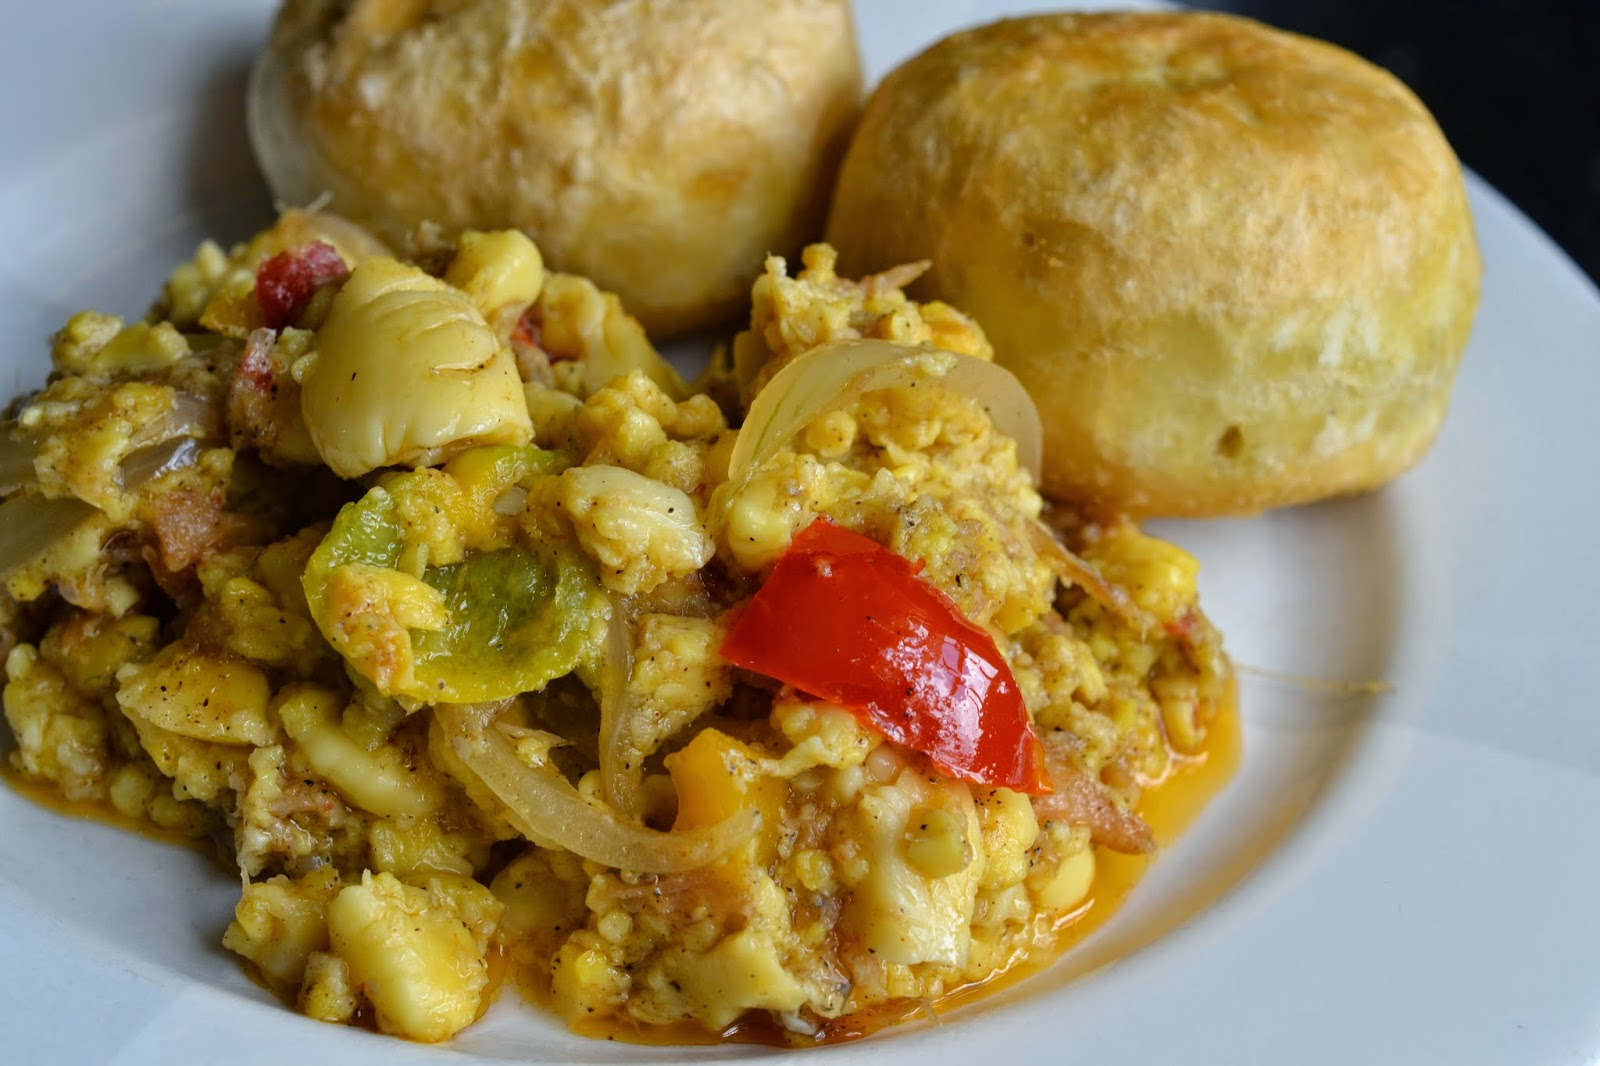 Greedy Girl : Ackee and saltfish with fried dumplings